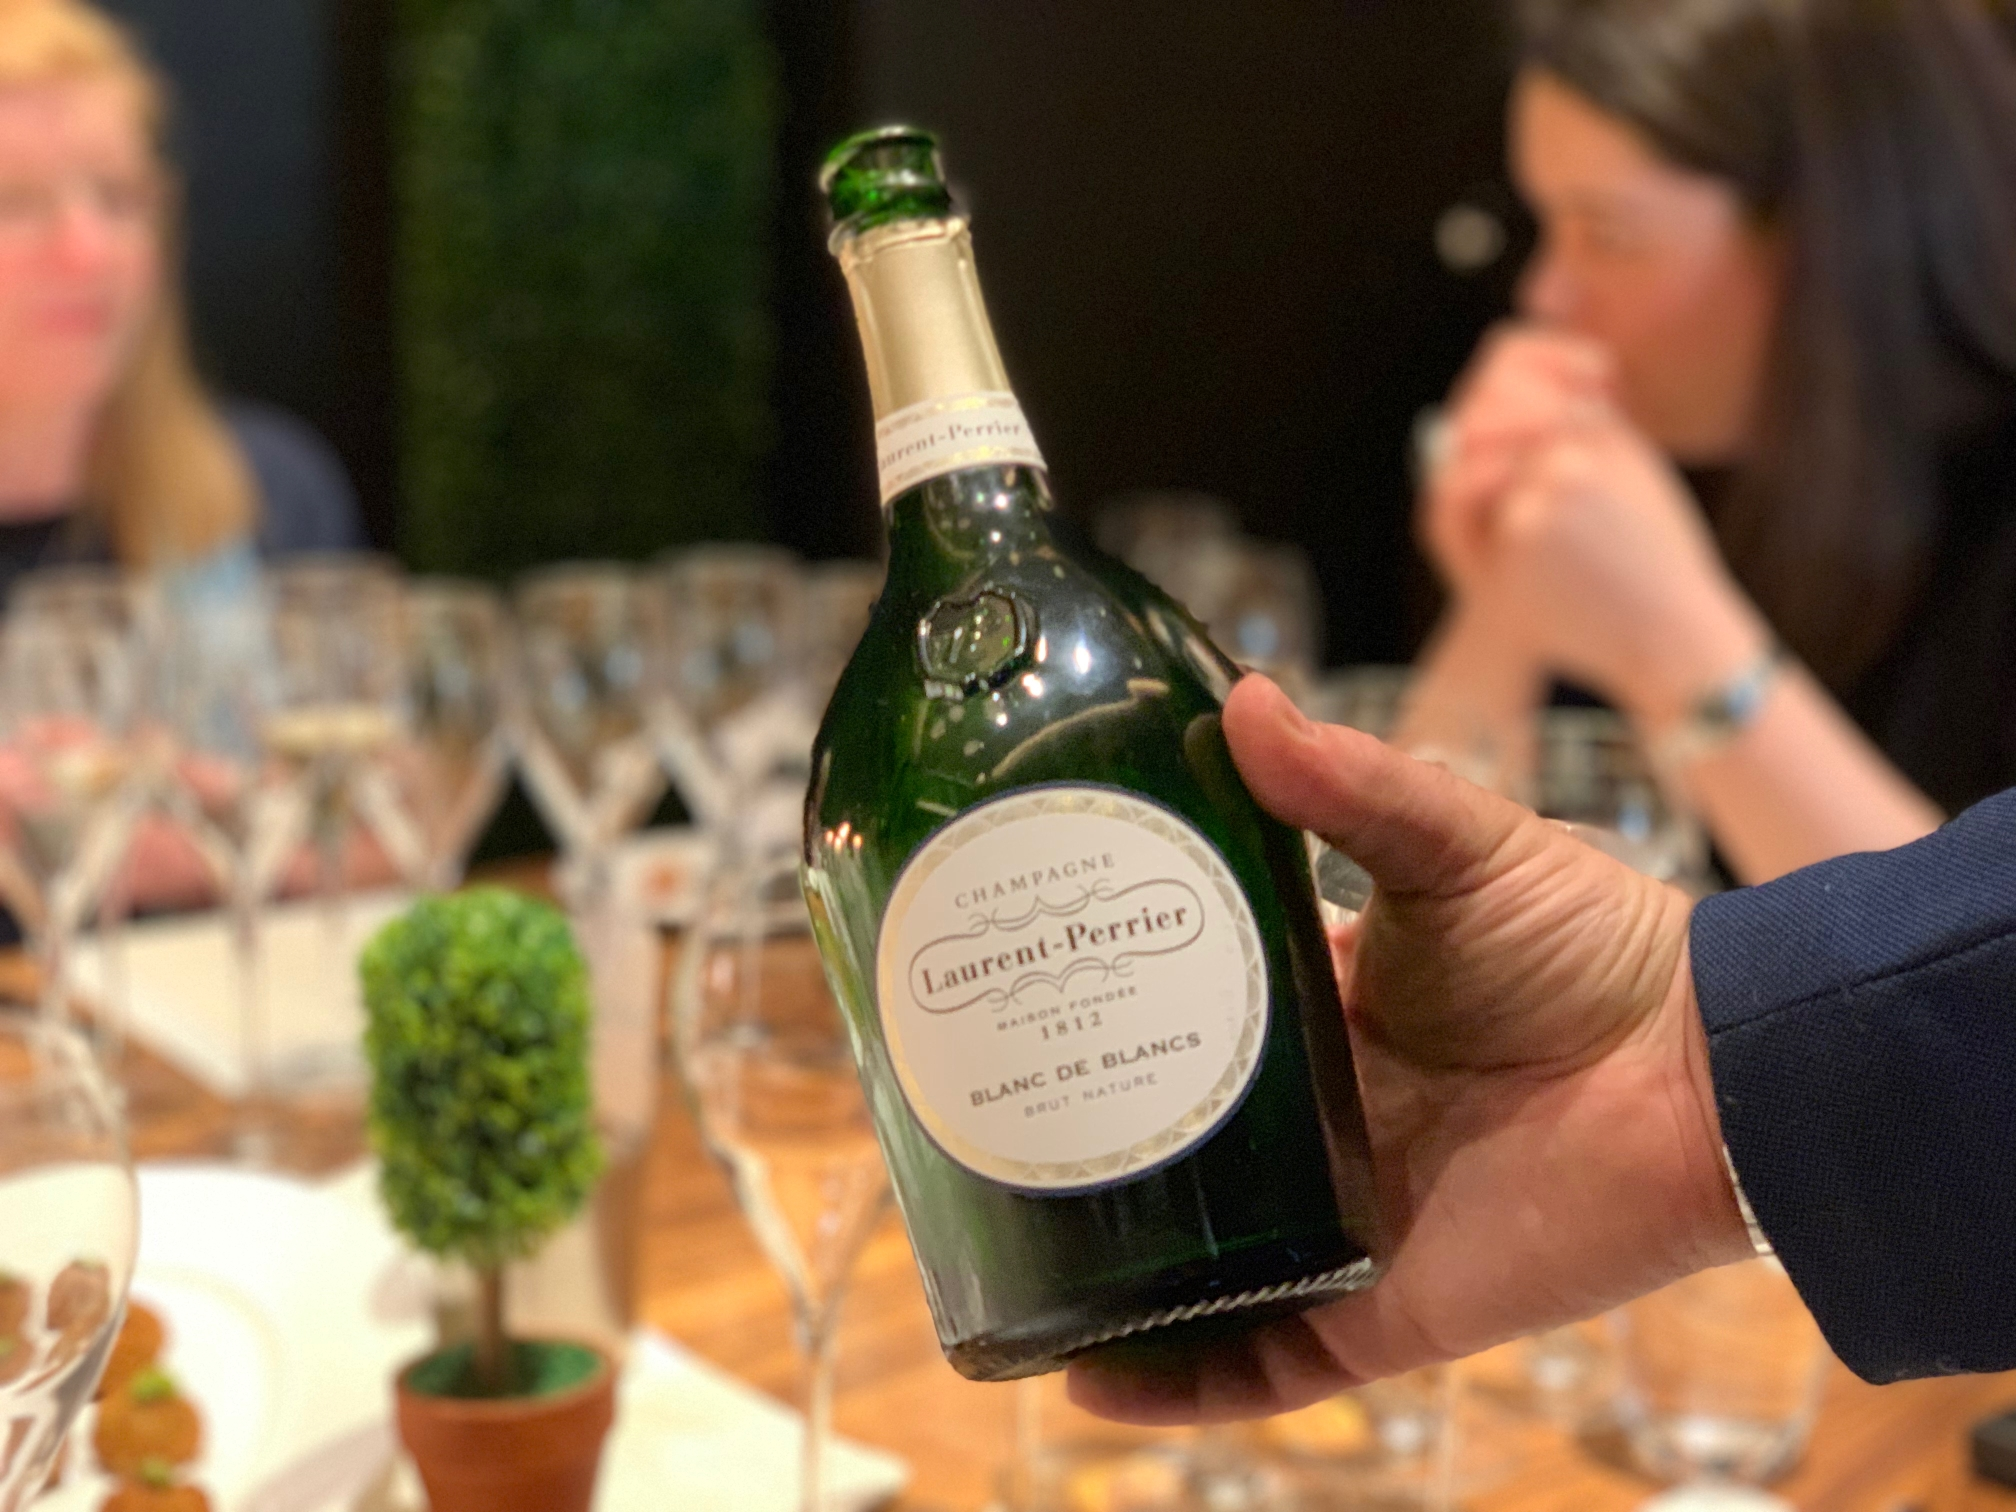 The Blanc de Blancs Brut Nature by Laurent-Perrier